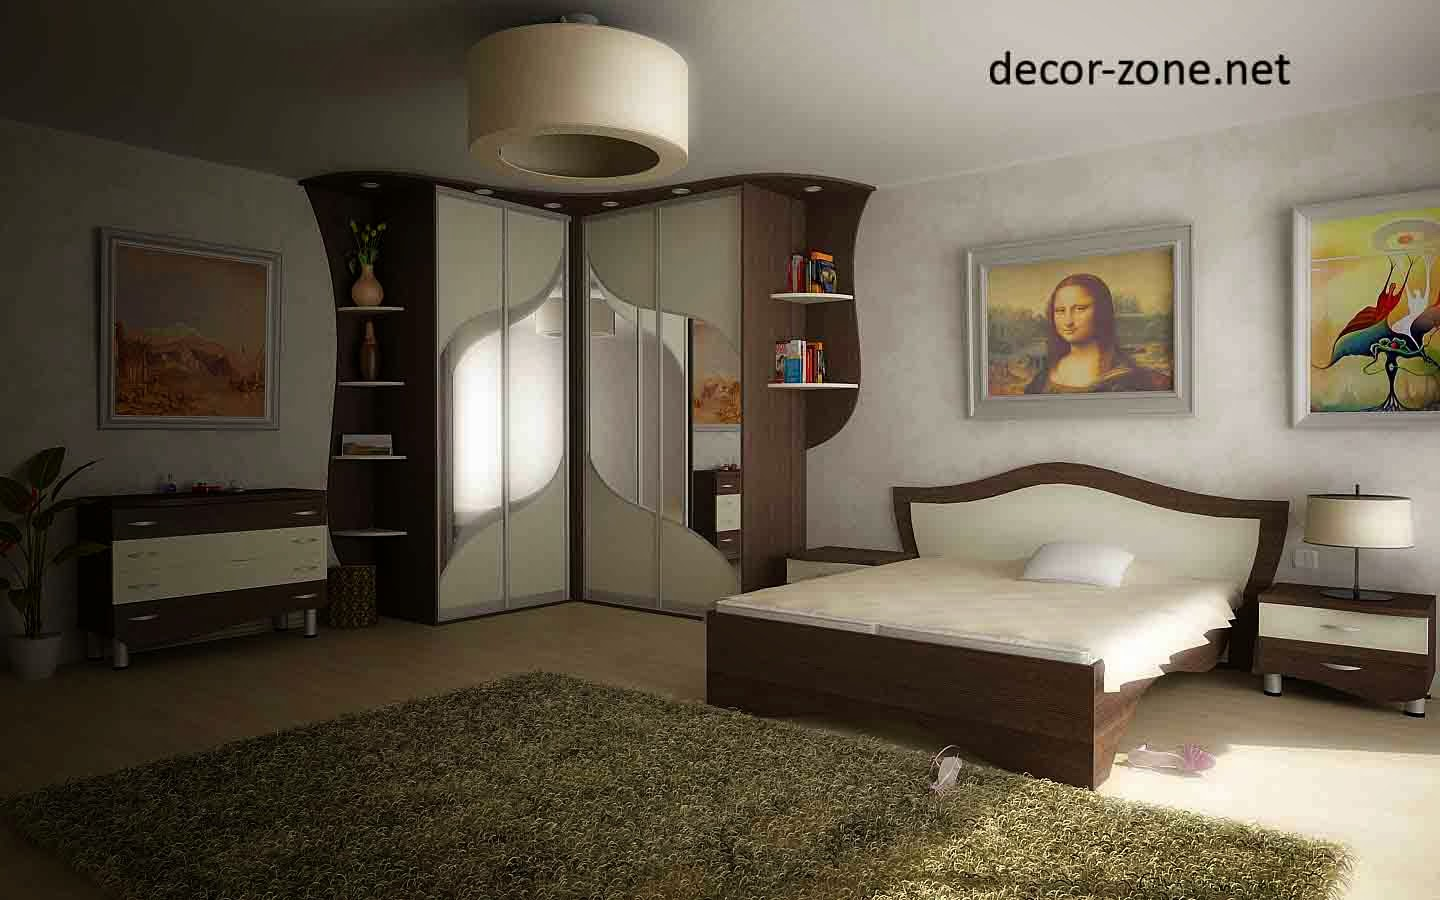 9 master bedroom decorating ideas Ideas to decorate master bedroom dresser